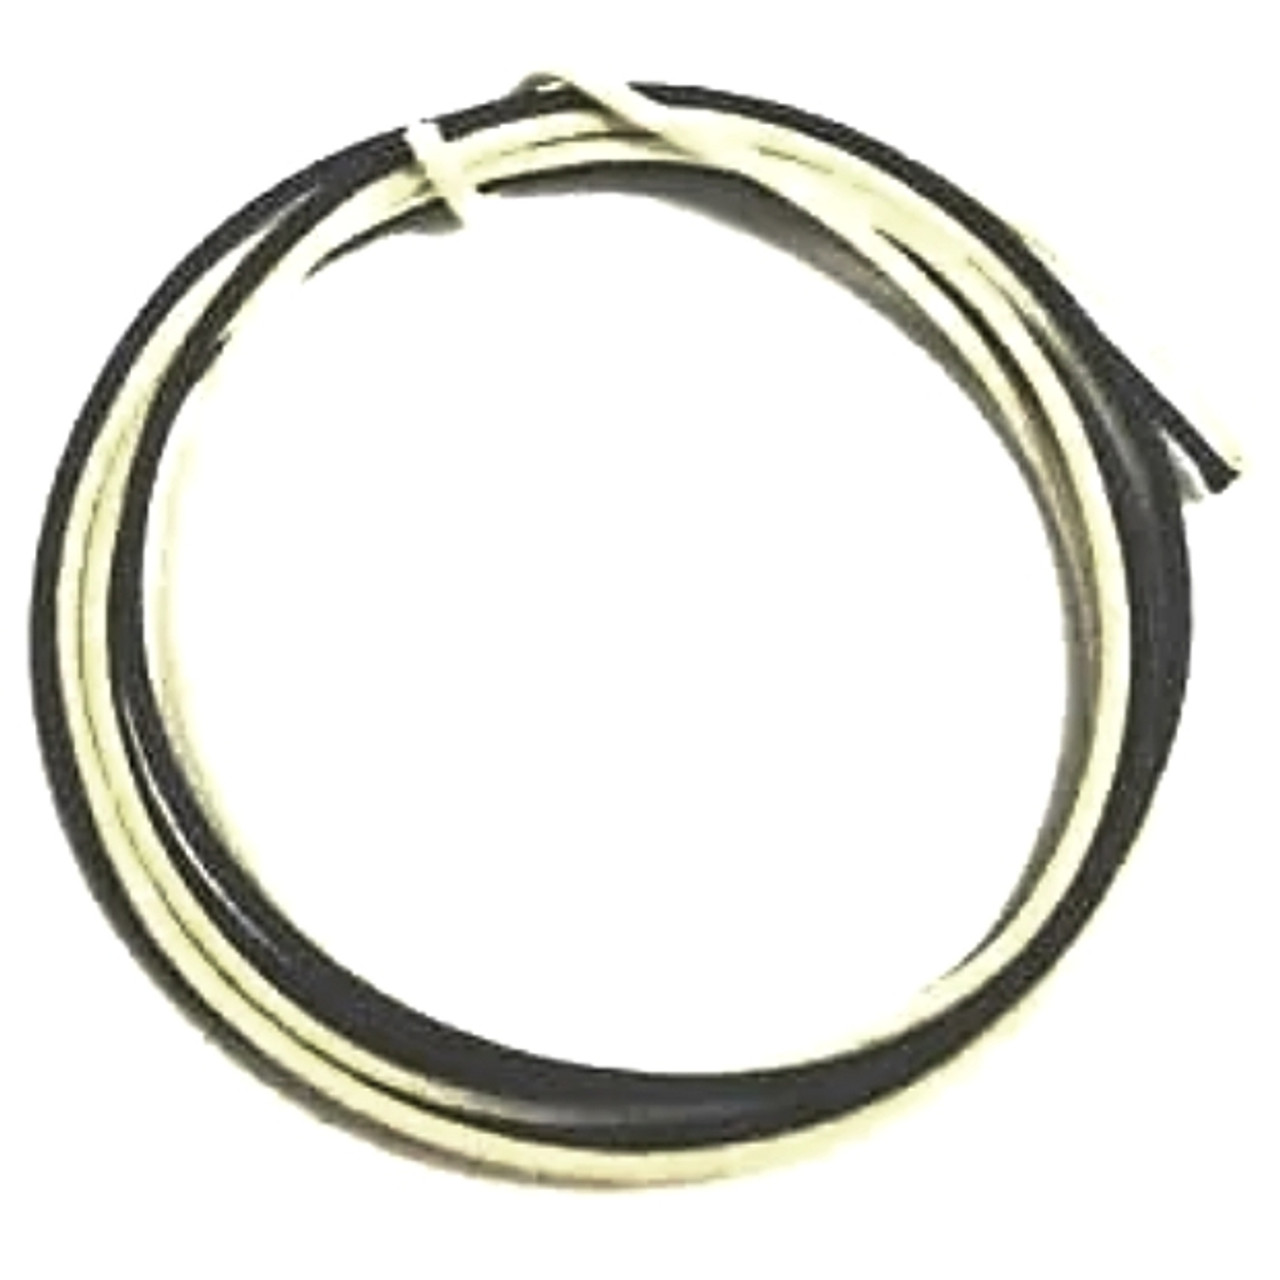 Cloth Covered  Vintage Style Stranded Guitar Wire-Black and White